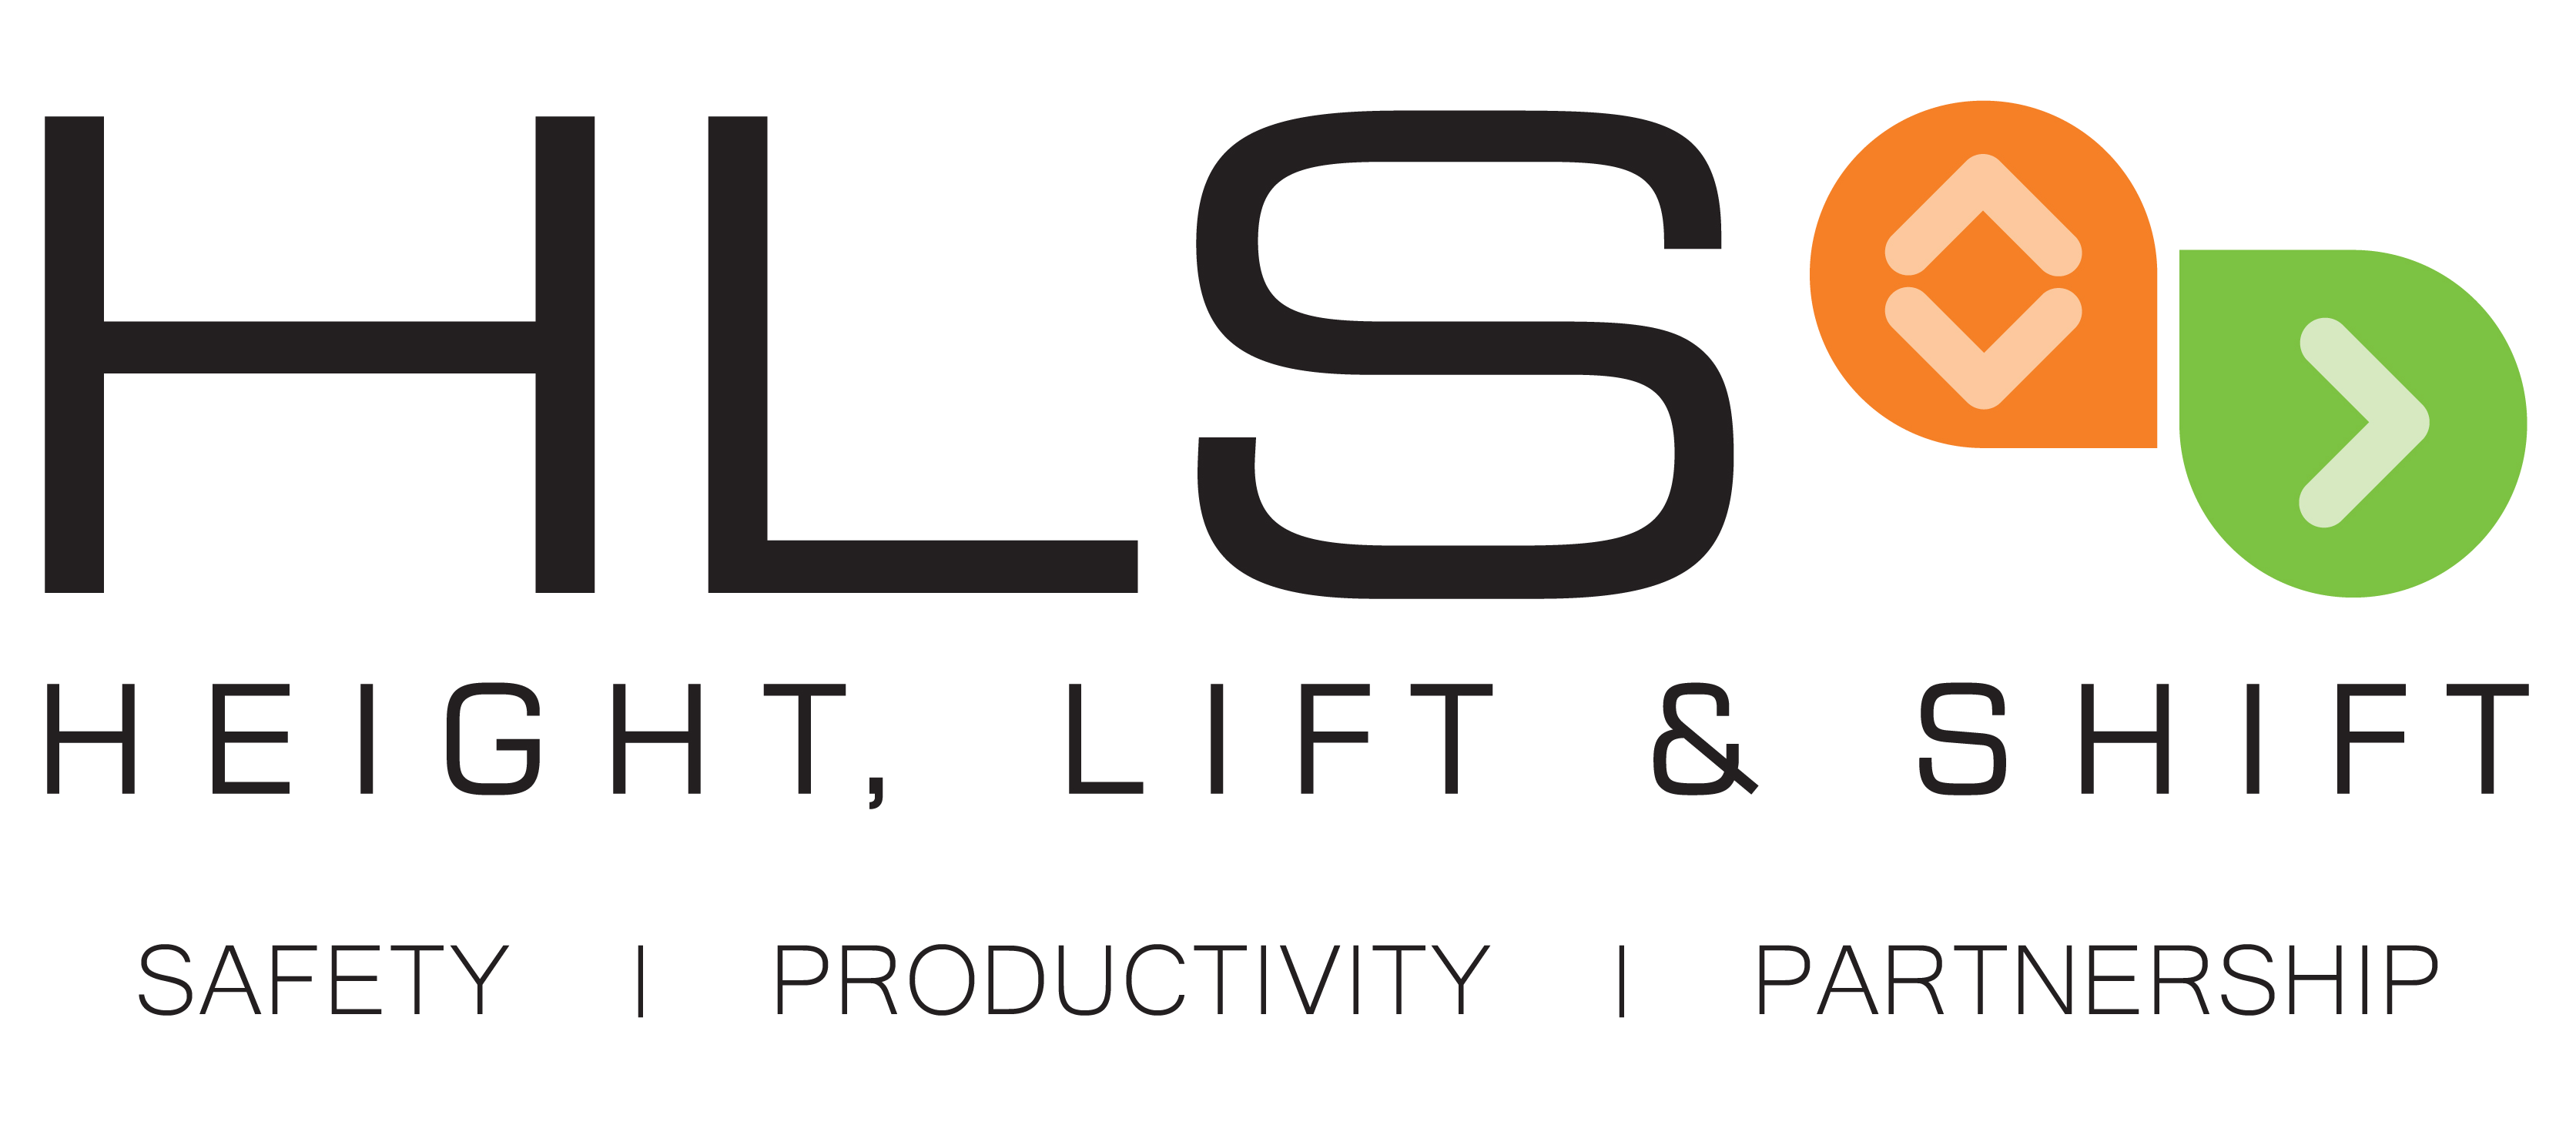 Height, Lift & Shift - Safe & productive workplace solutions